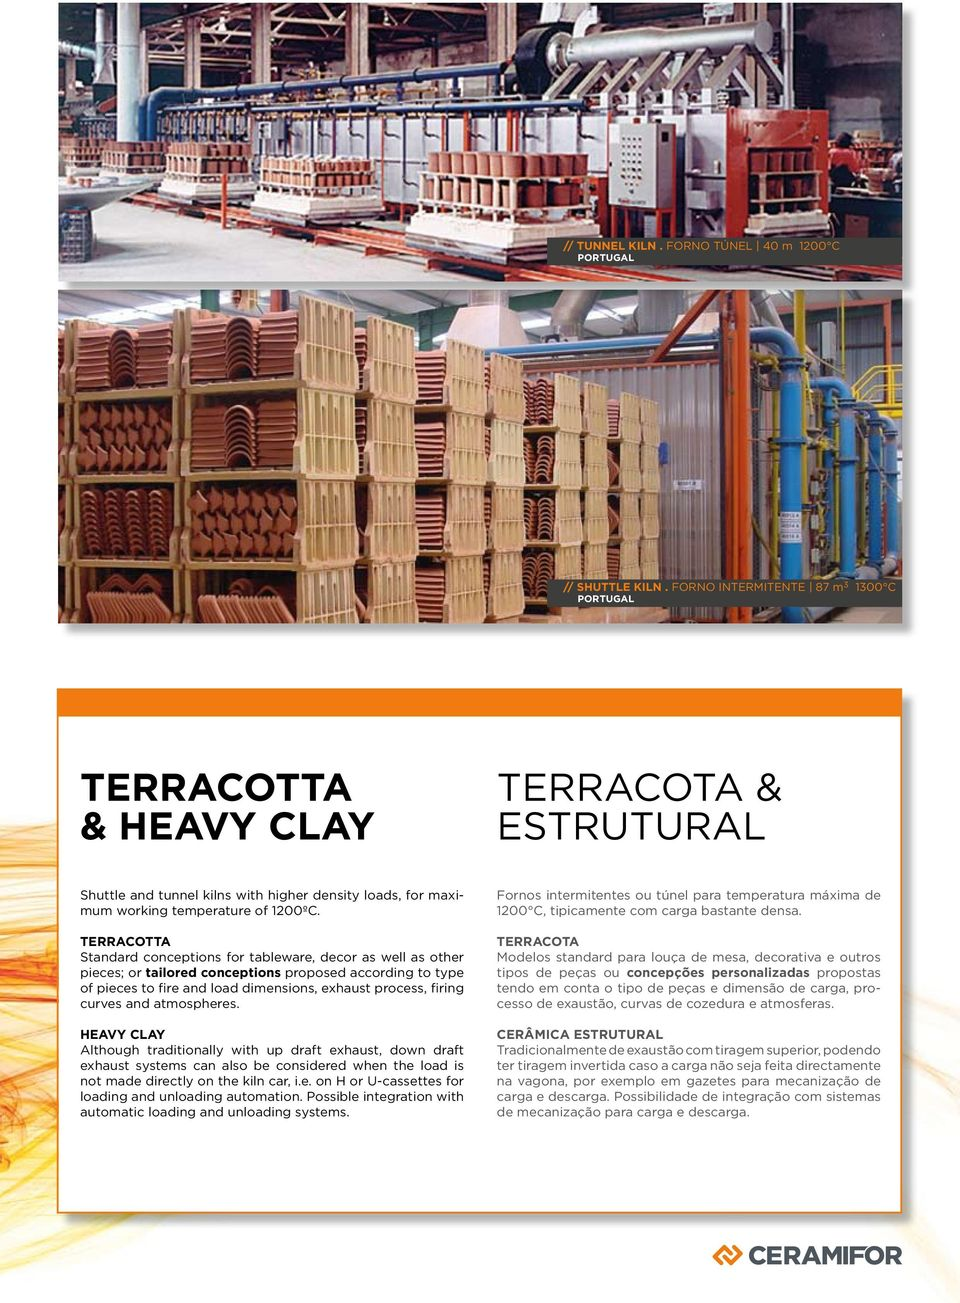 TERRACOTTA Standard conceptions for tableware, decor as well as other pieces; or tailored conceptions proposed according to type of pieces to fire and load dimensions, exhaust process, firing curves